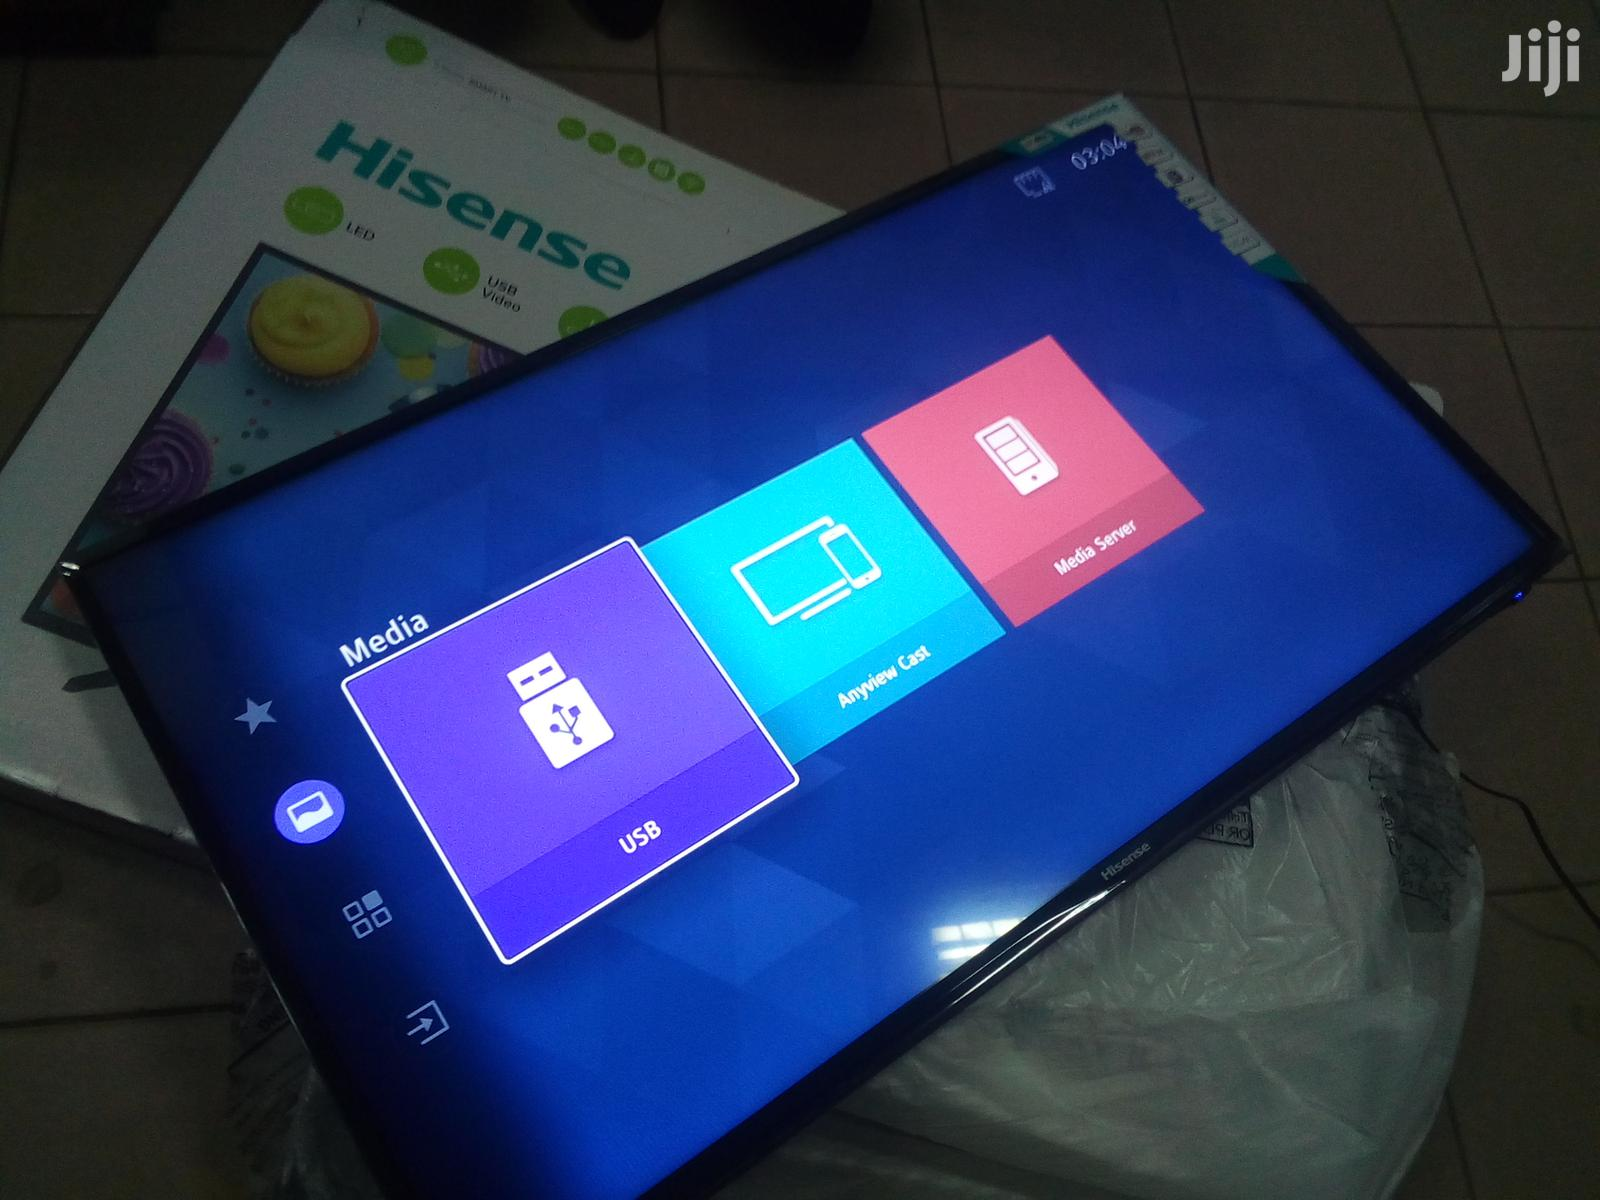 Brand New Hisense Digital Smart Flat Screen Tv 43 Inches